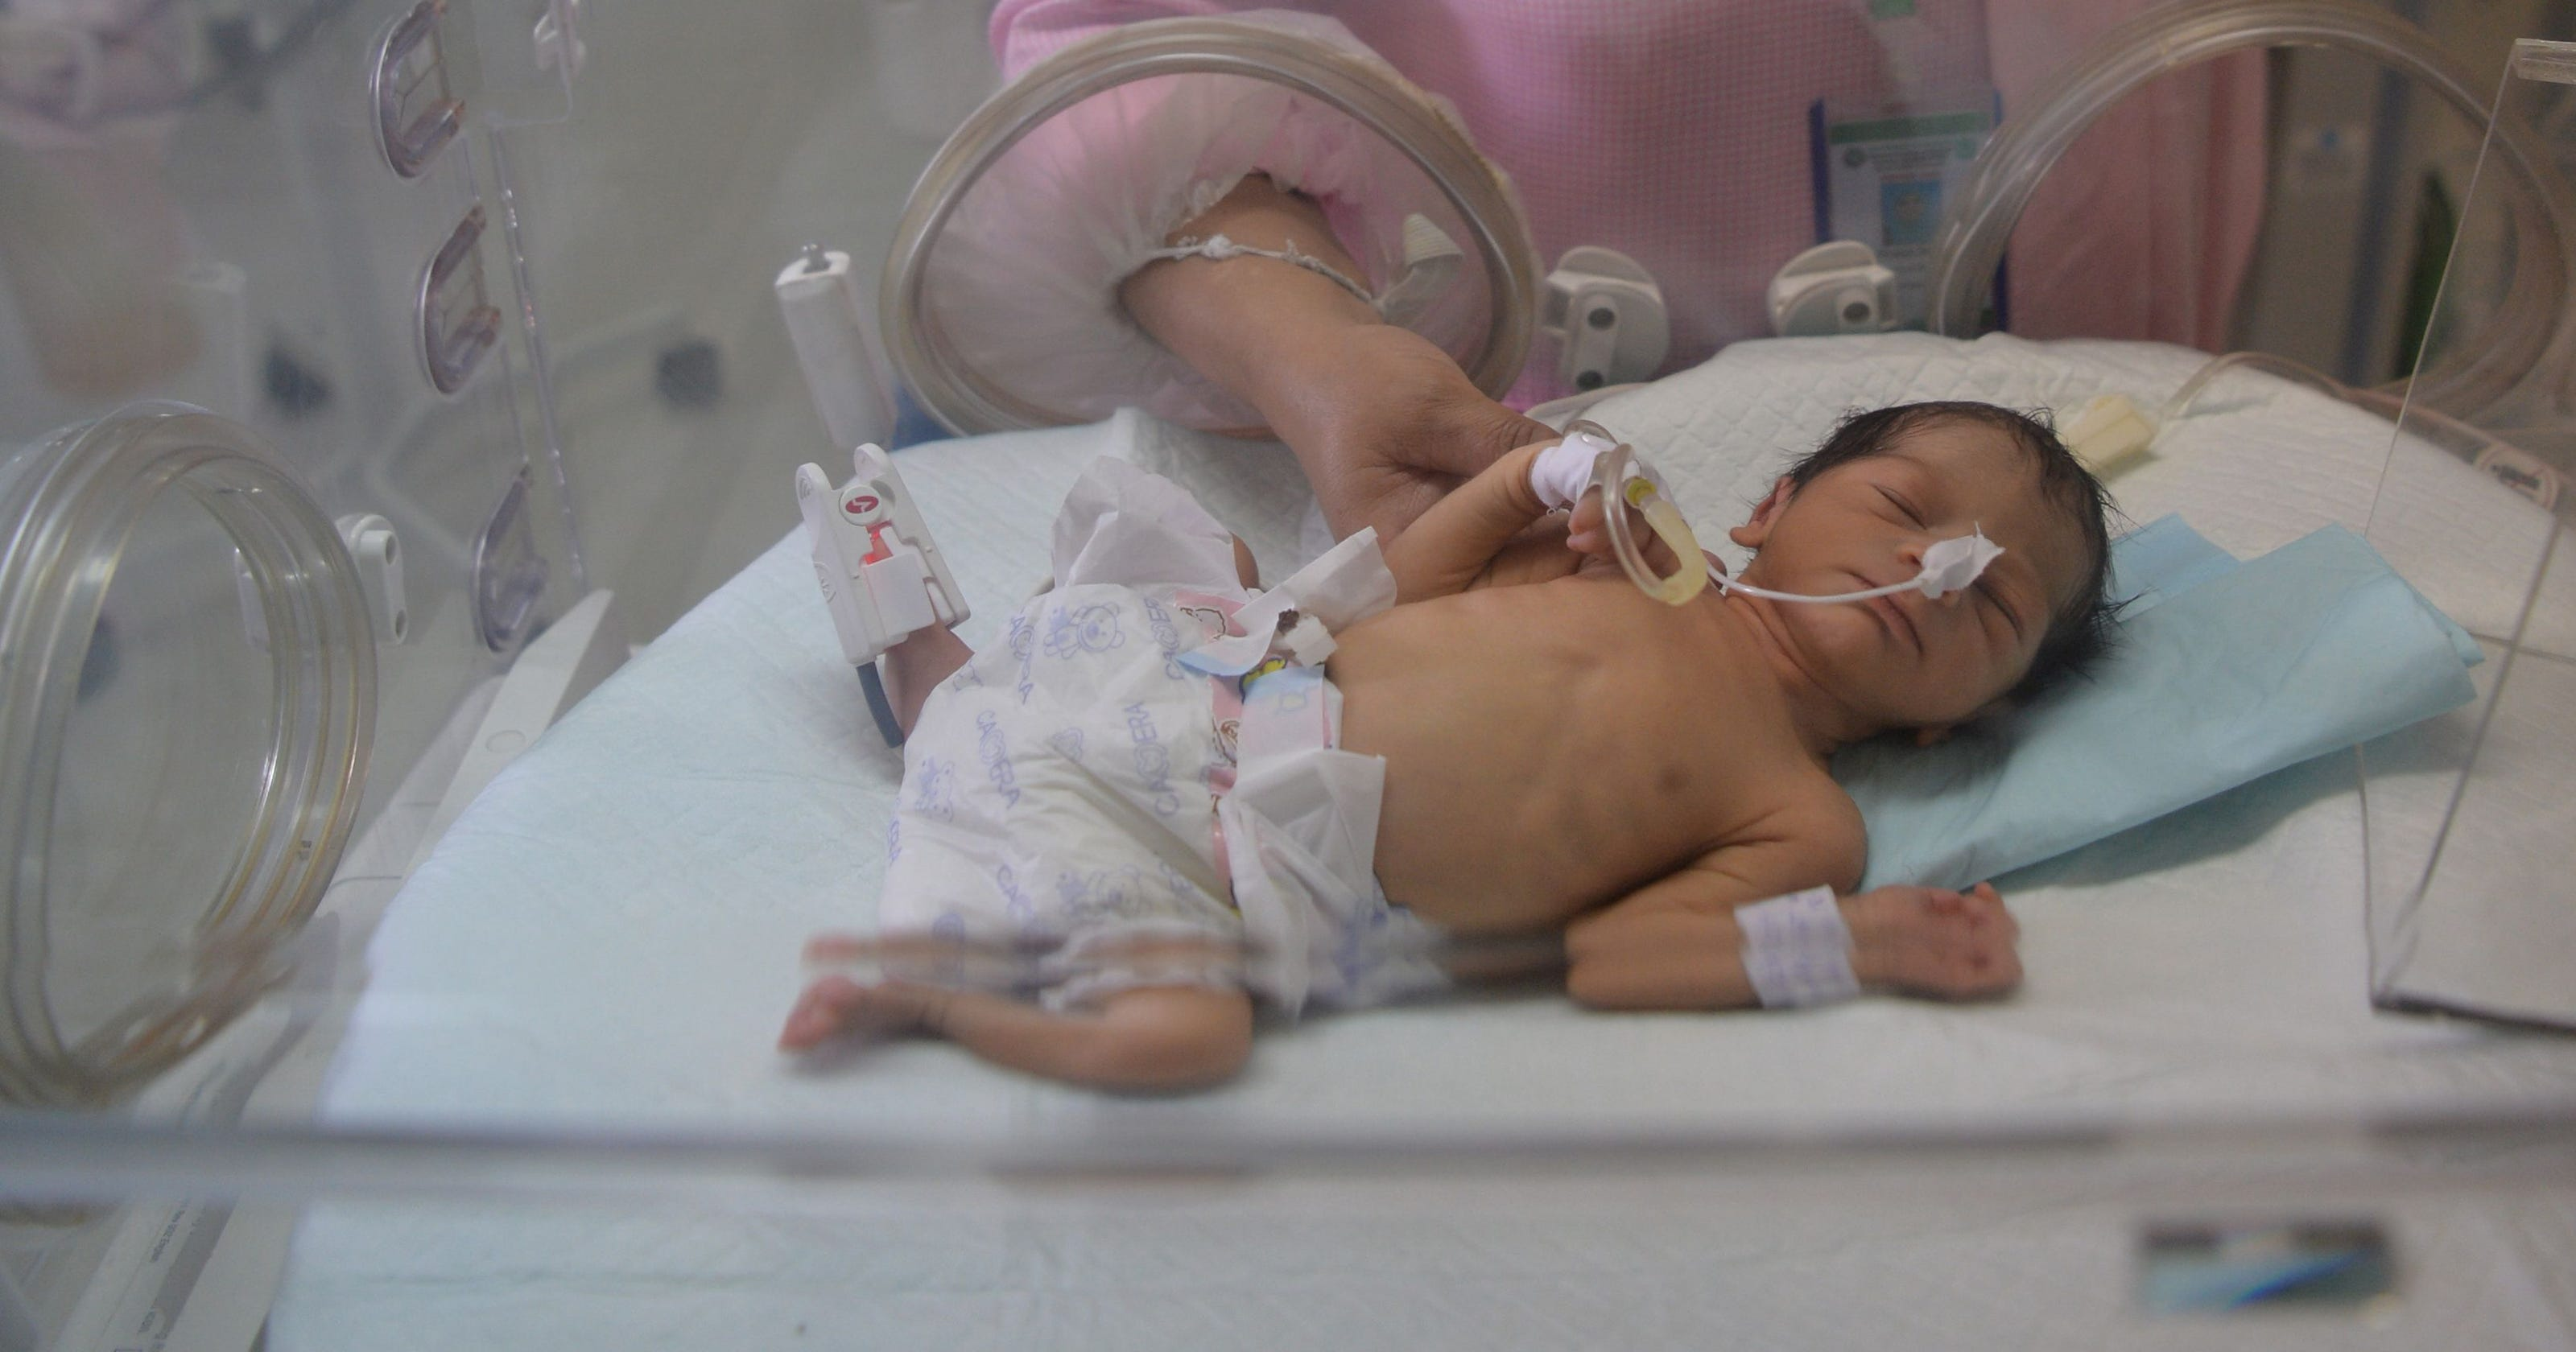 Unicef 4 in 5 newborn deaths preventable